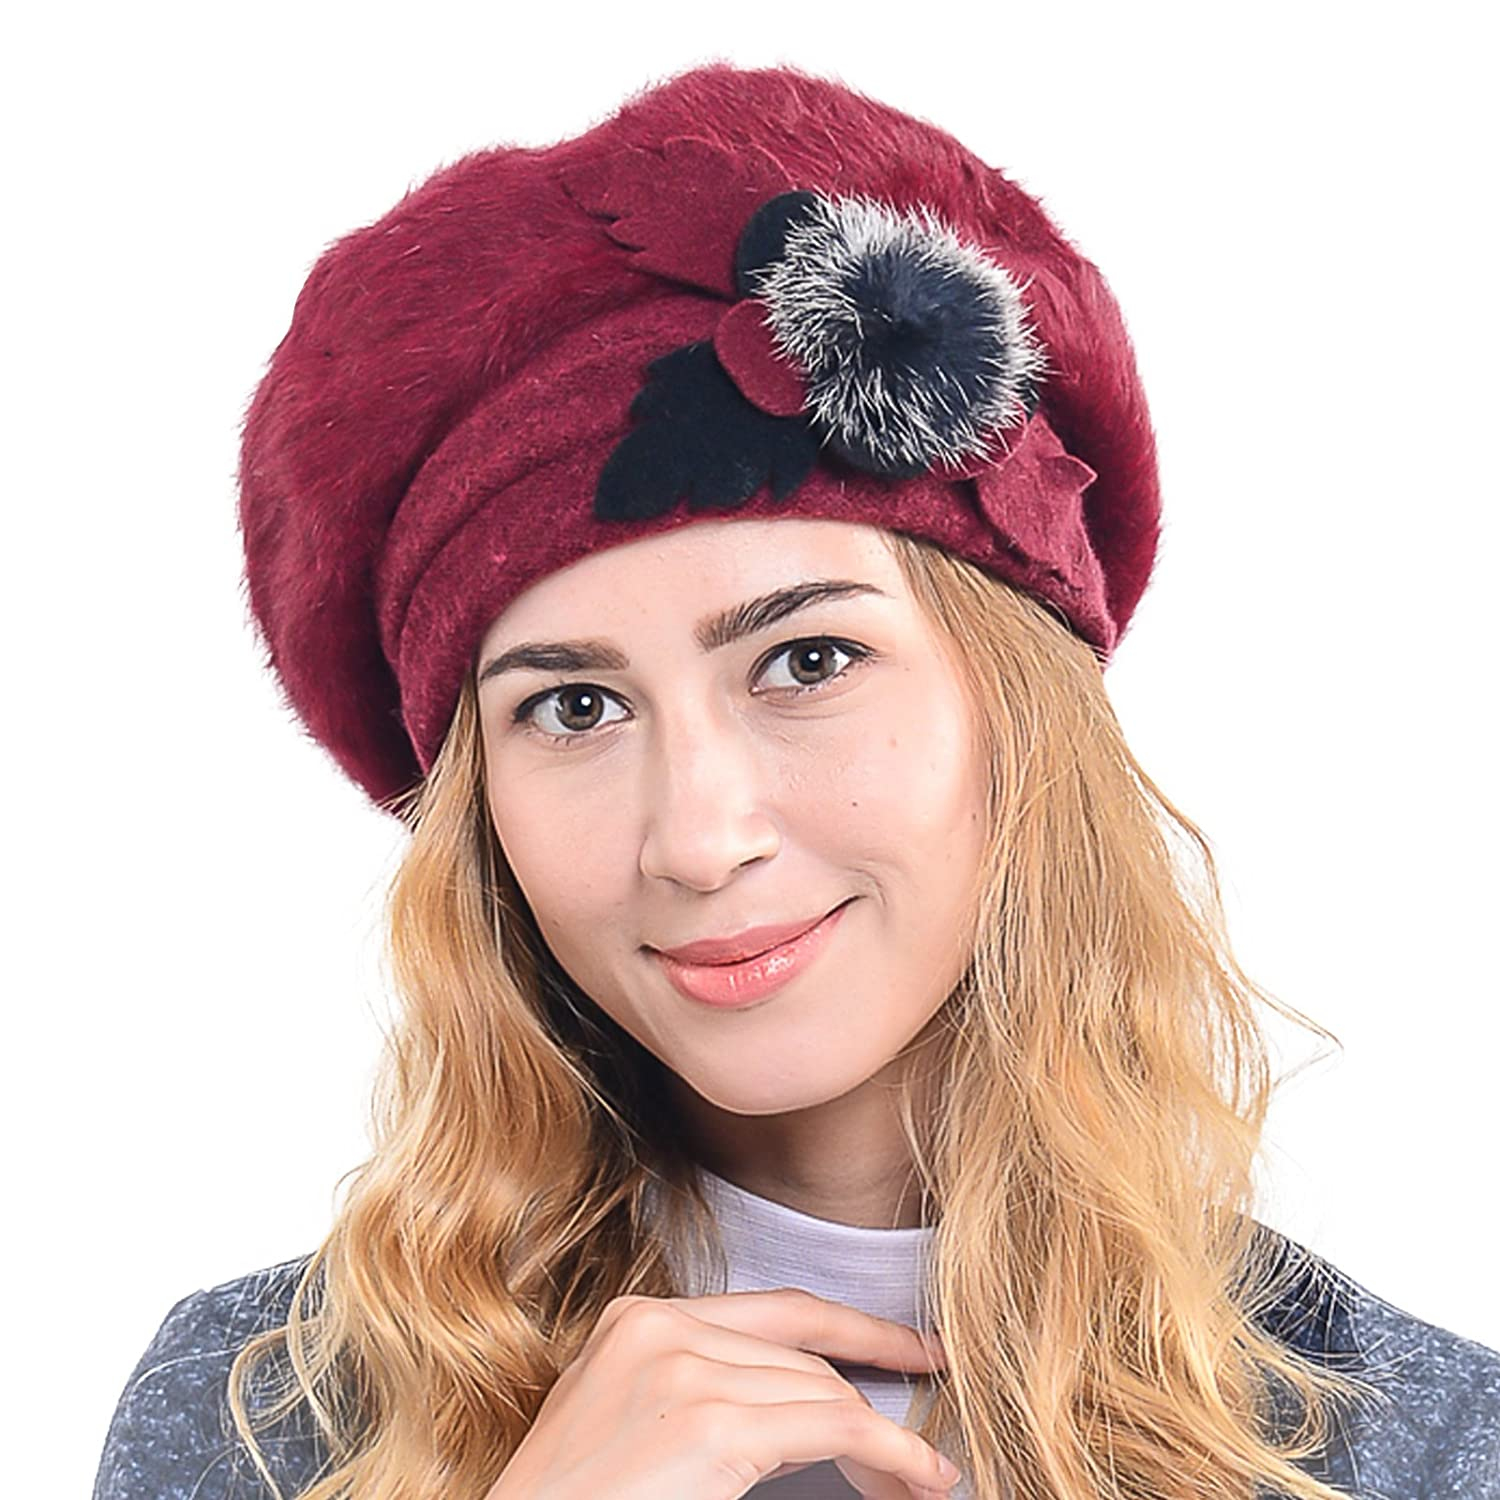 Beret Beanie for Winter C020 Women/'s French Beret 100/% Wool Cloche Hat